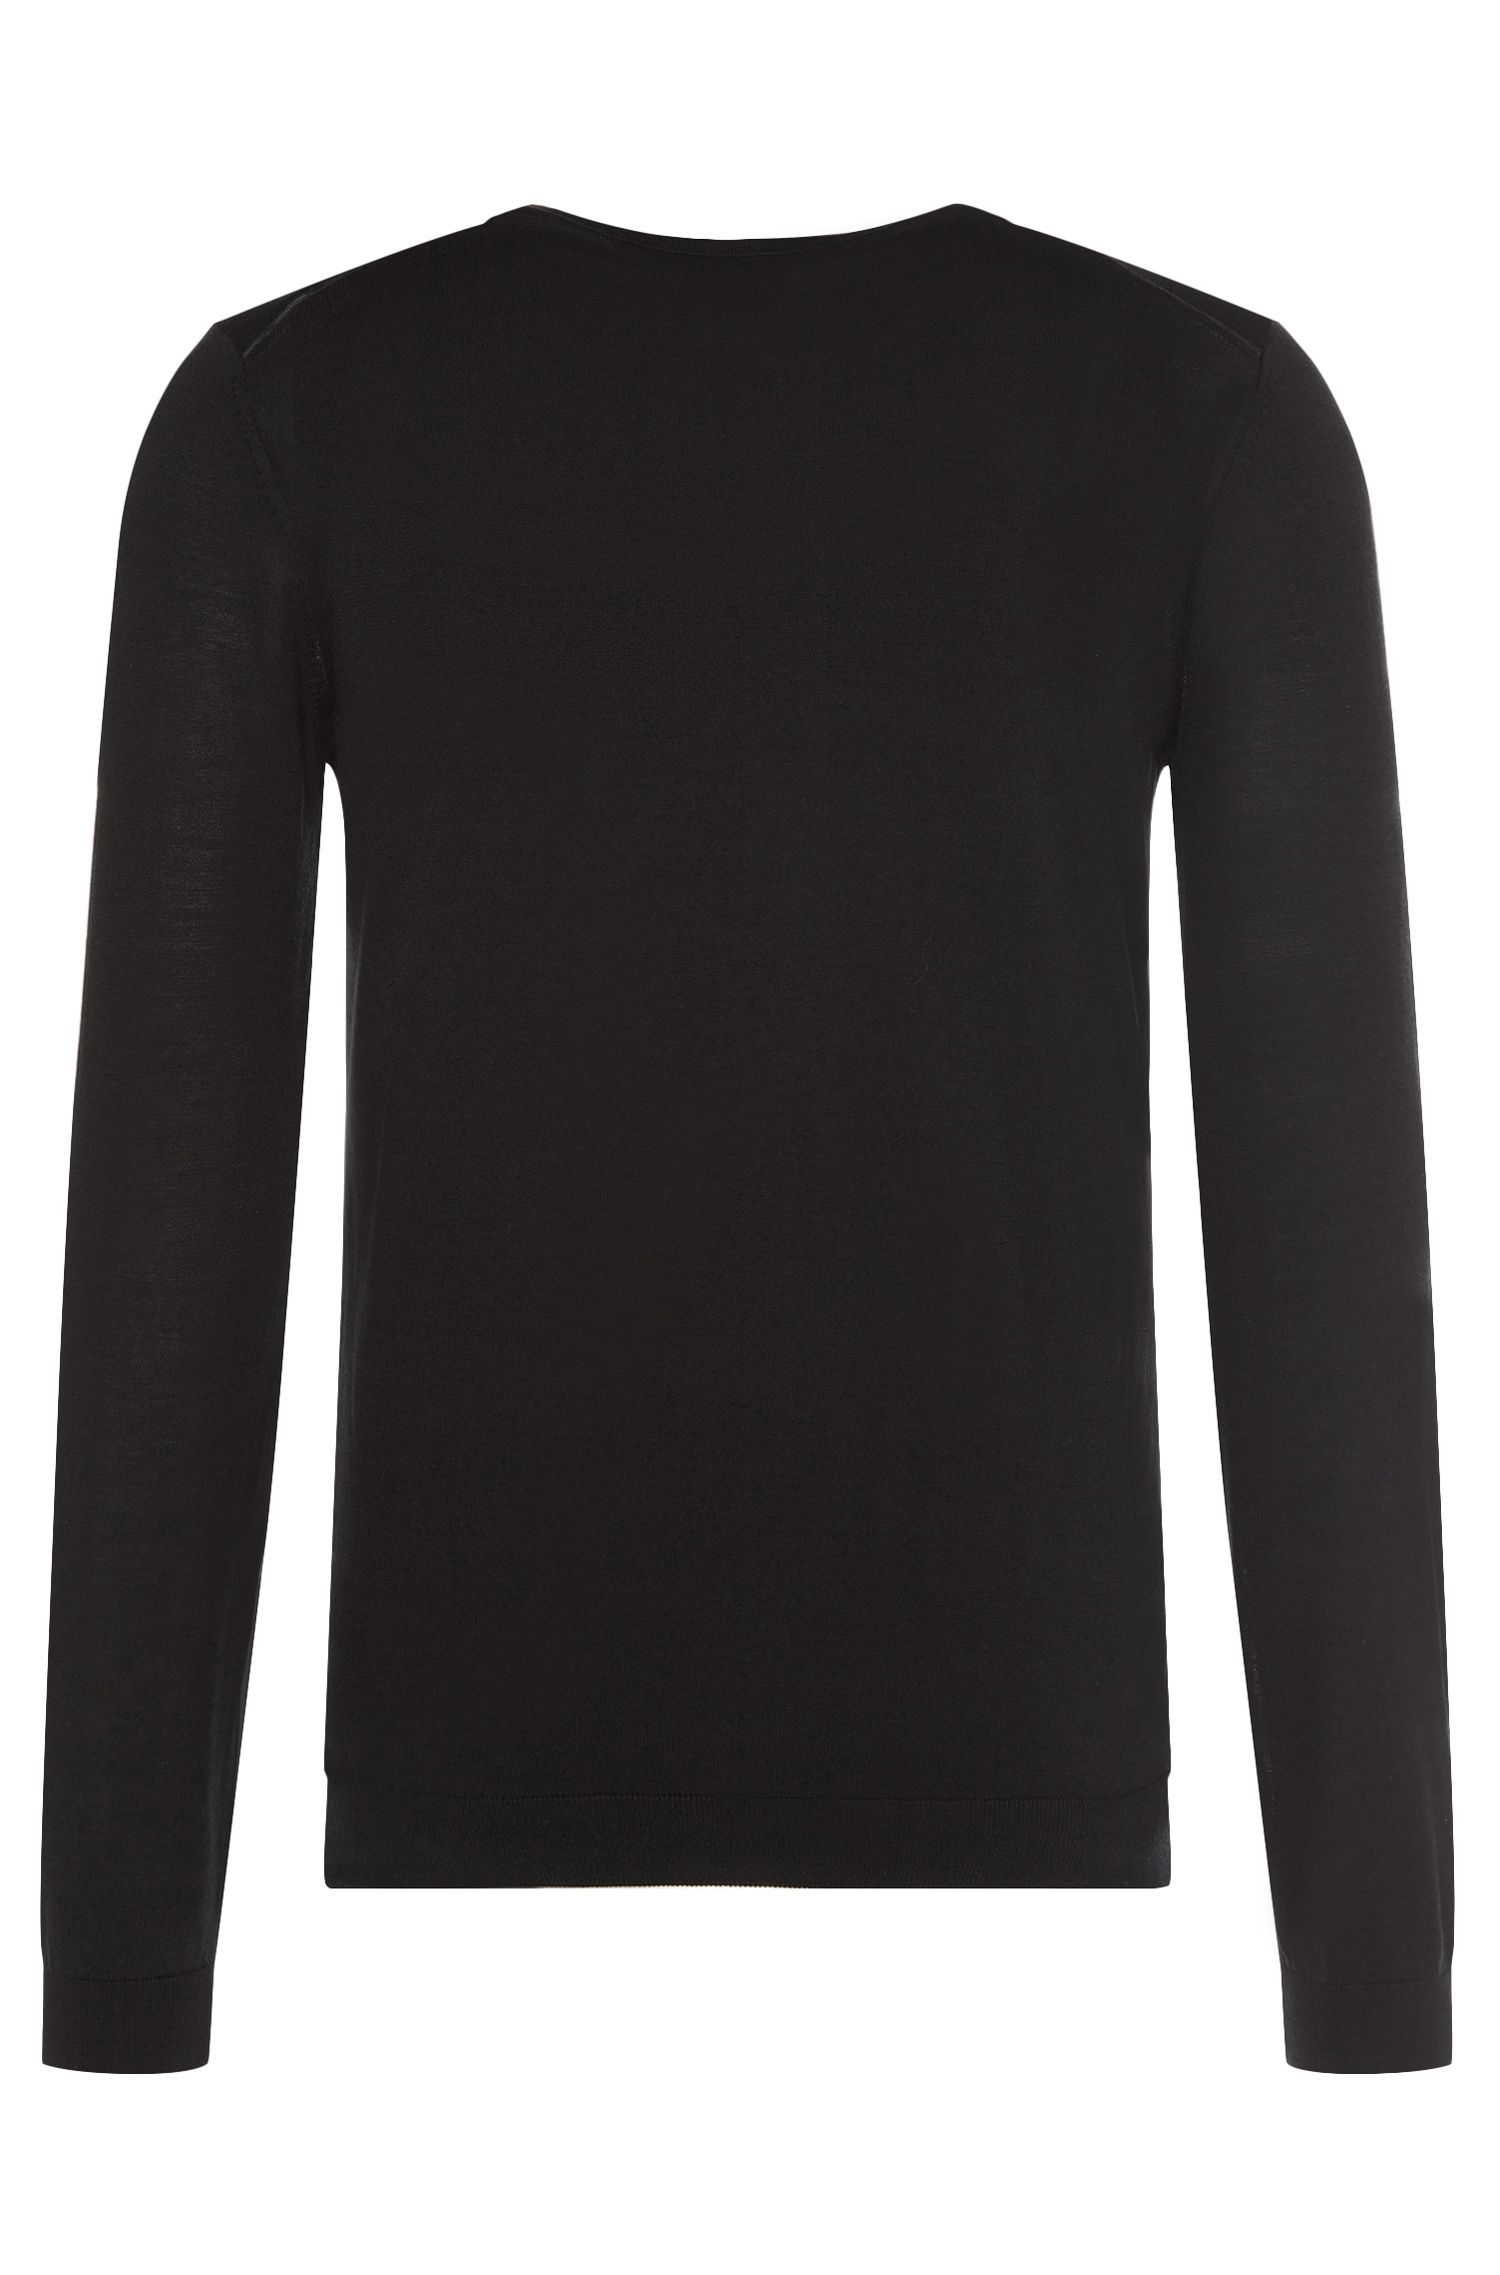 'T-Gervasio' | Italian Silk Cotton V-Neck Sweater